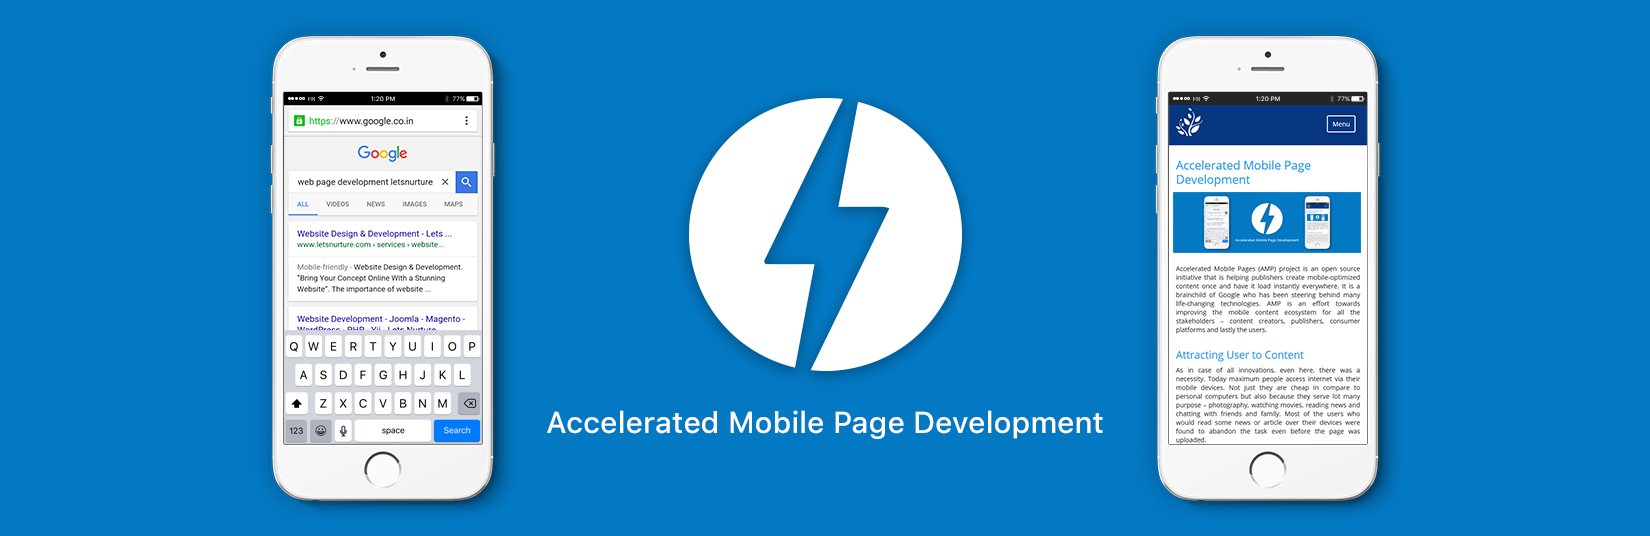 accelerated-mobile-page-development